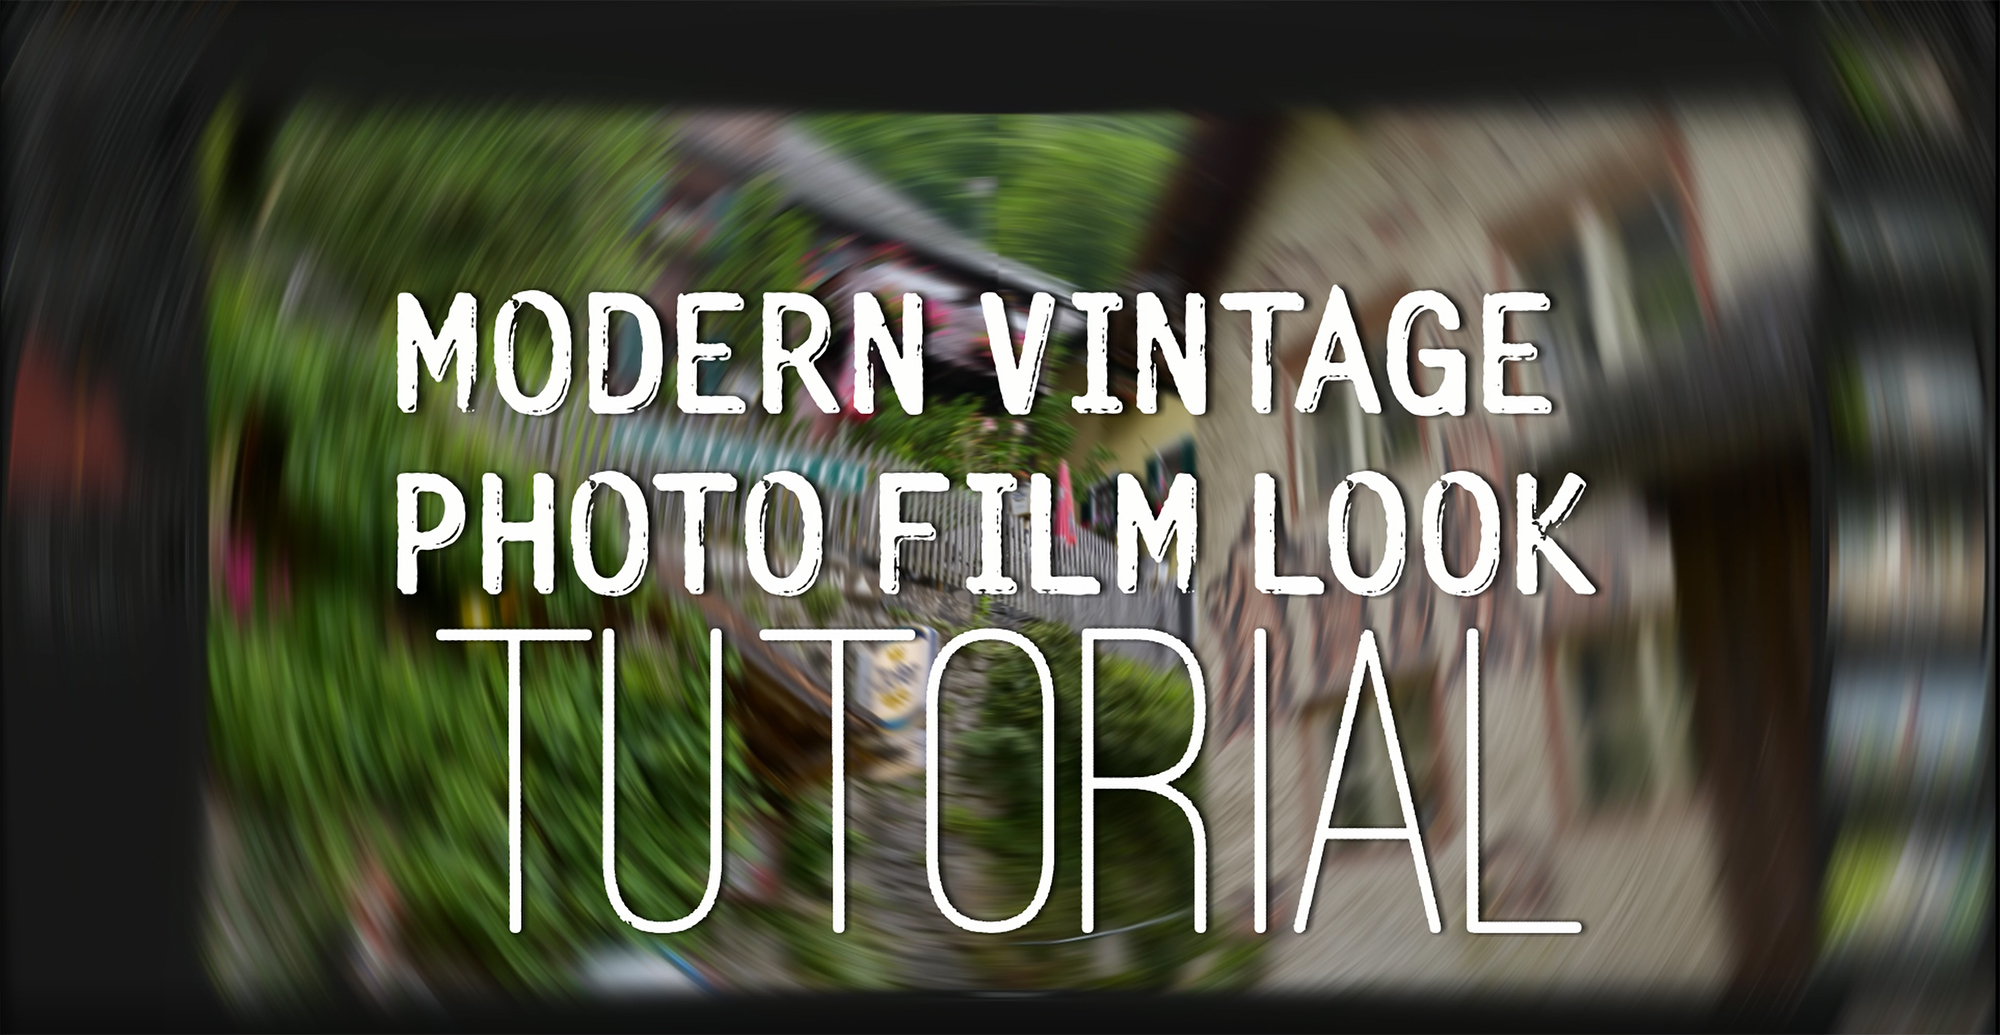 Modern Vintage Photo Film Look TUTORIAL